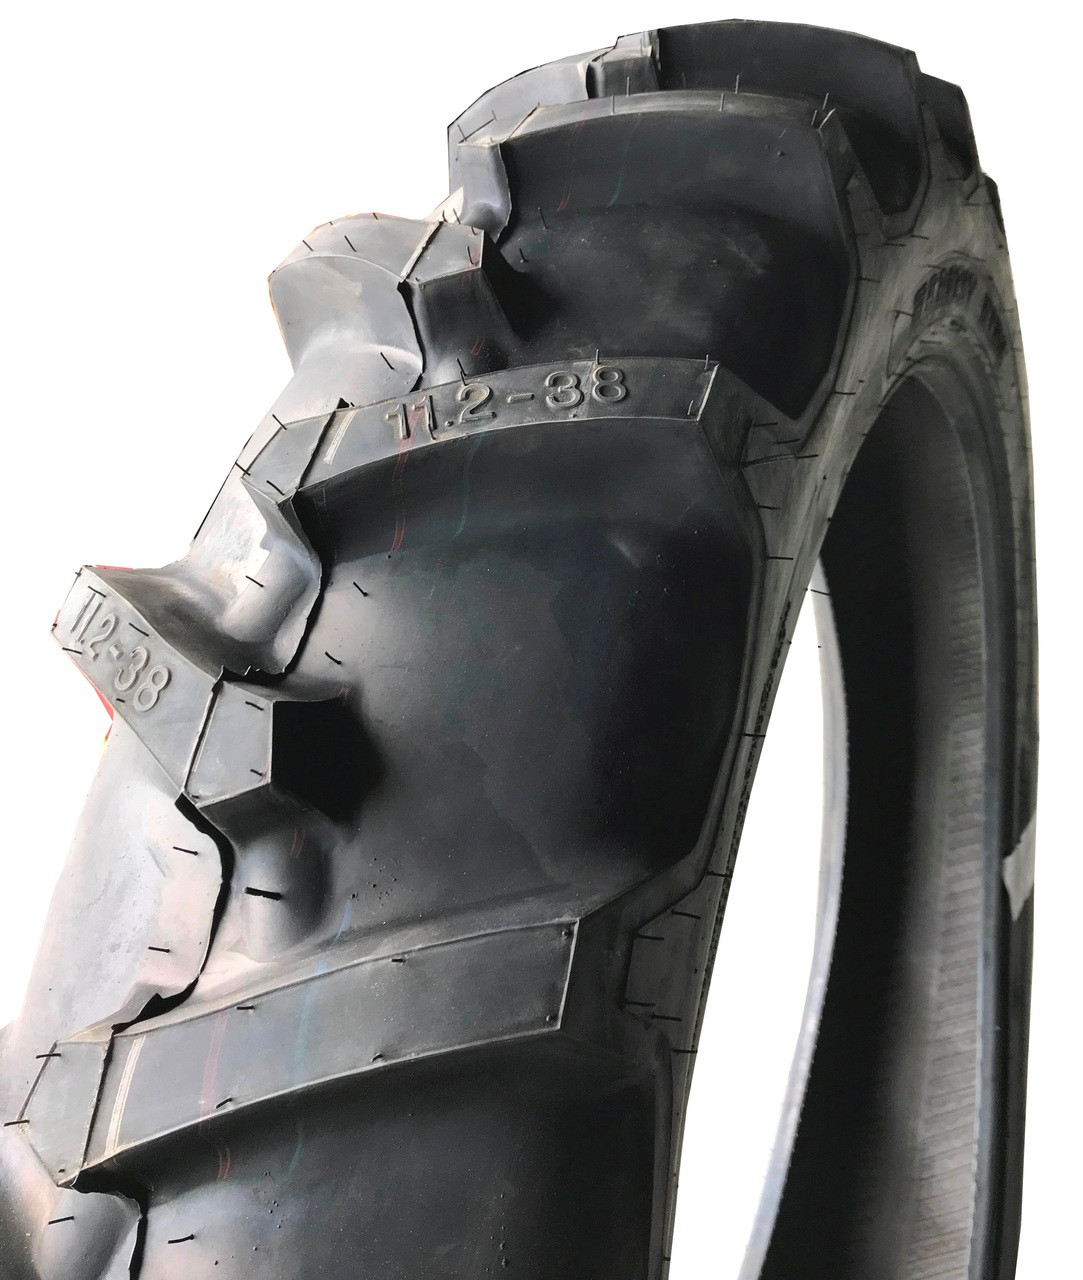 New Tractor Tire 11.2 38 Harvest King R-1 R-Gator 2 6 ply TubeType 11.2x38 Irrigation